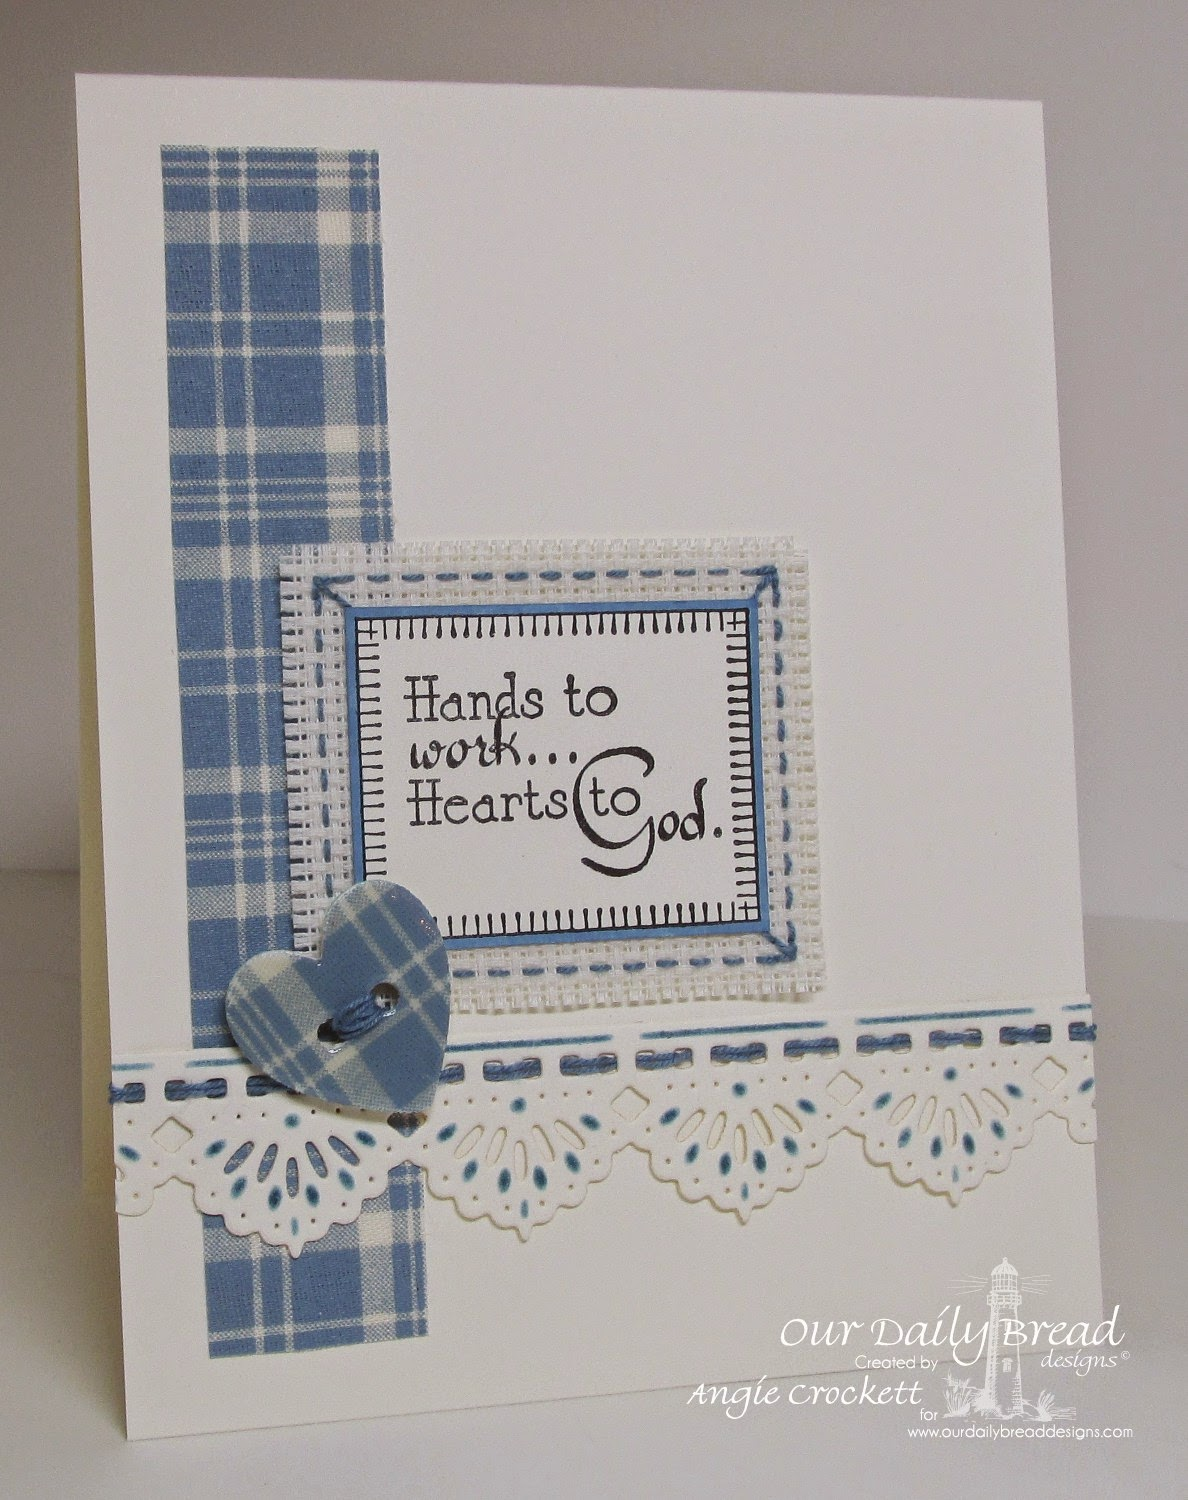 ODBD Custom Beautiful Borders Dies, ODBD Custom Ornate Hearts Dies, Sewing, Card Designer Angie Crockett